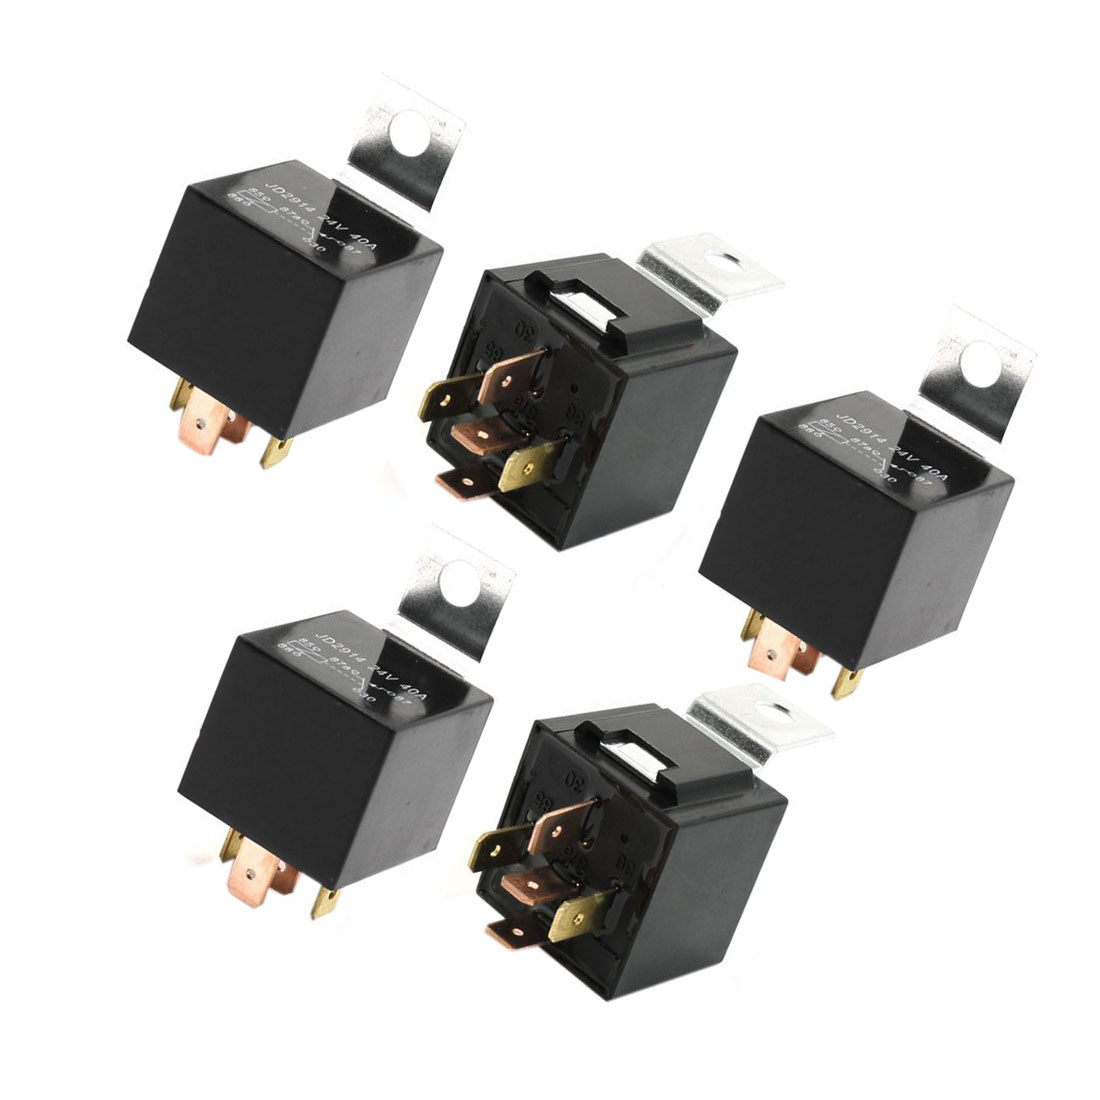 Promotion! 5 Pcs Vehicle Car Auto Relay Switch Power 5-Pin 24 Volts 40 Amp